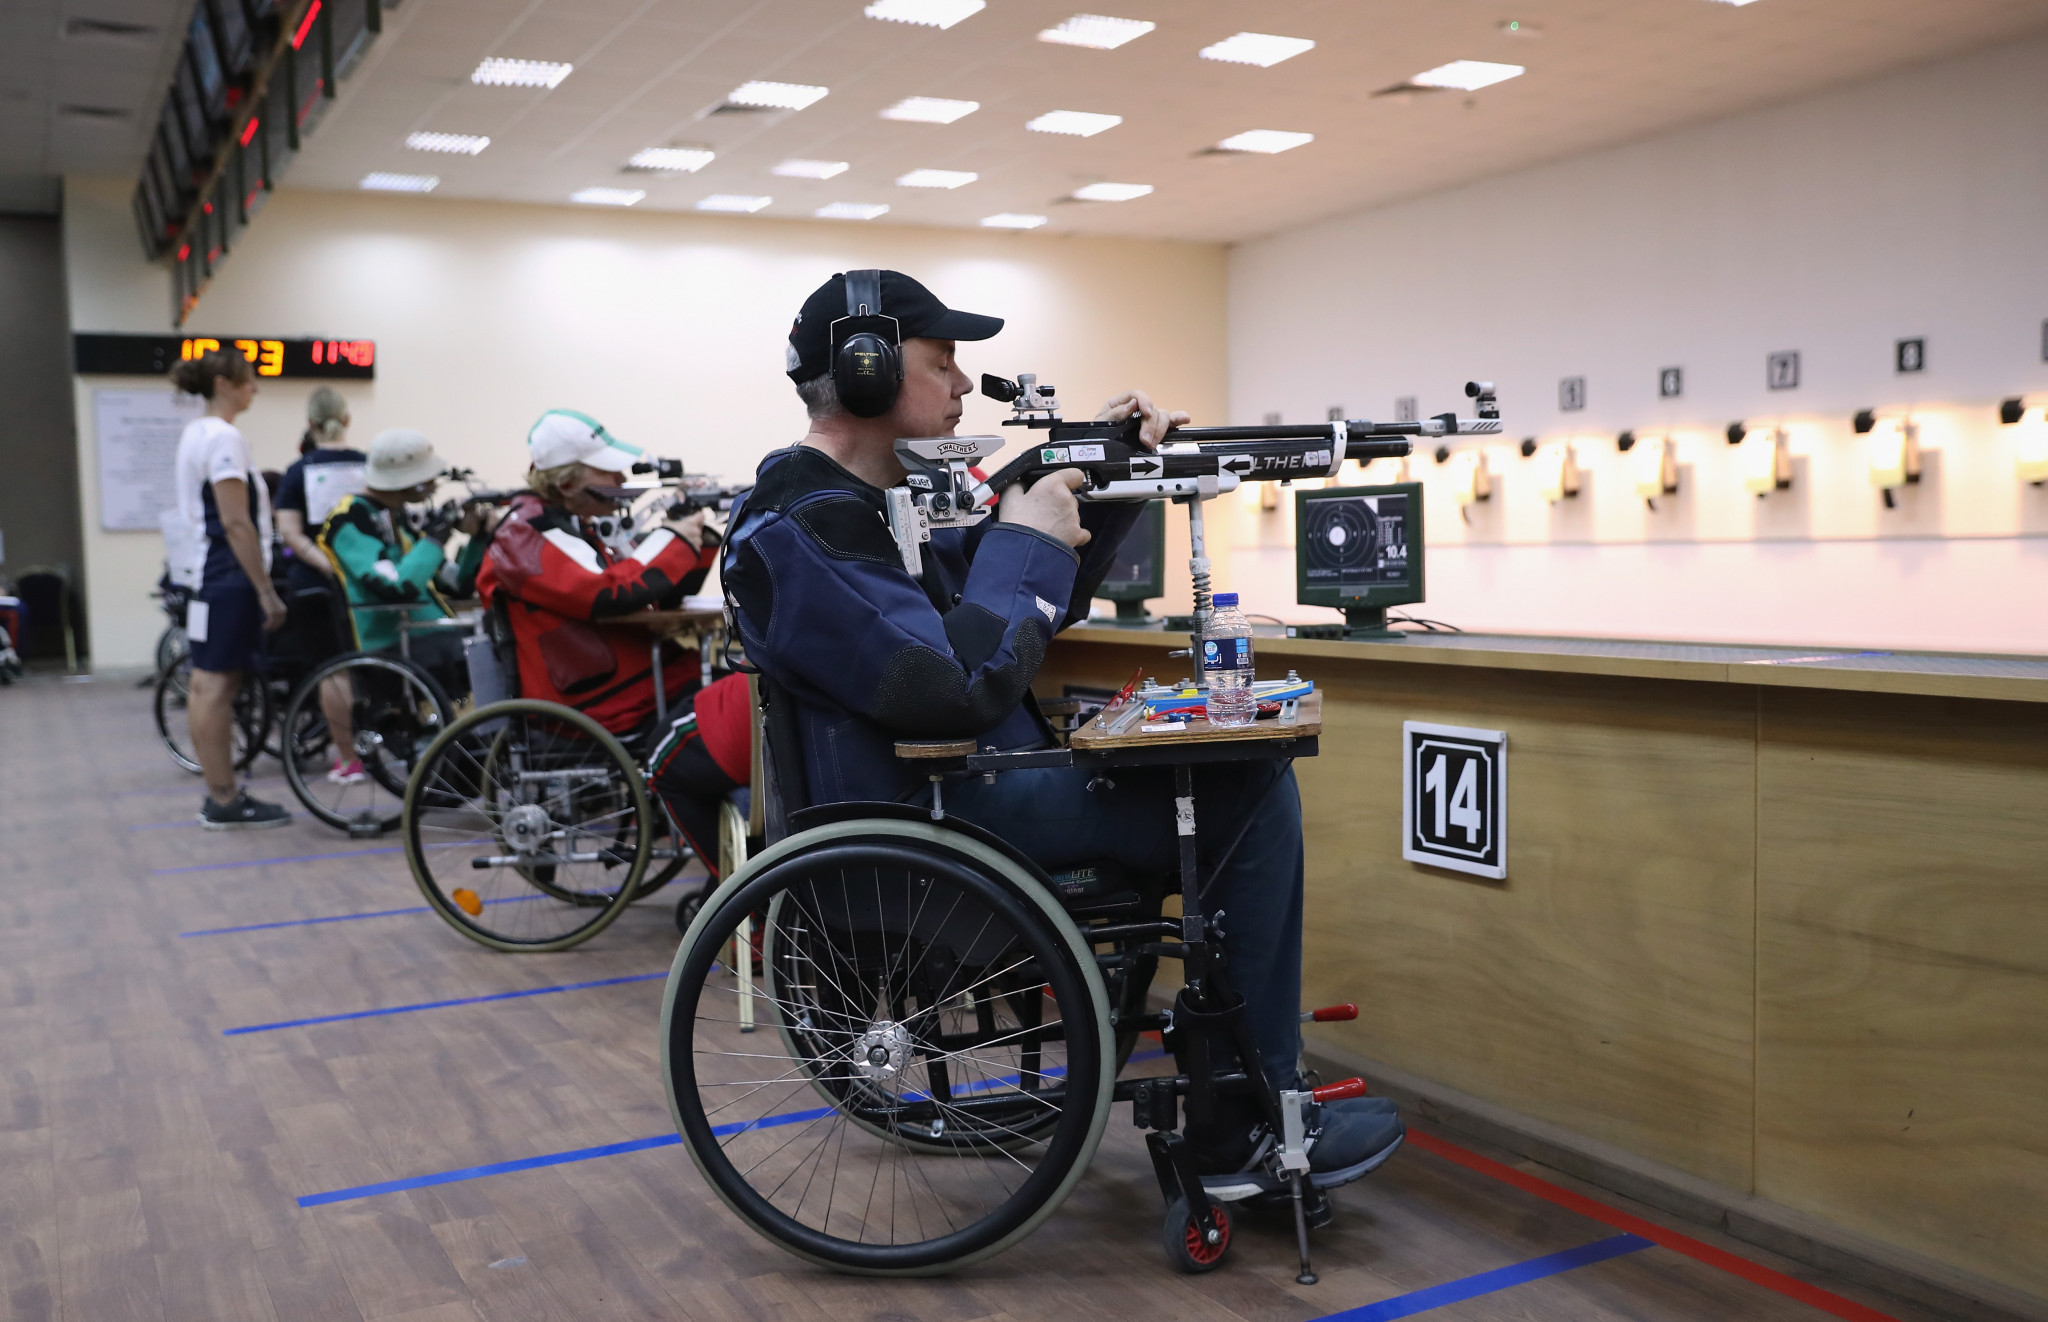 Chateauroux to stage World Shooting Para Sport World Cup event in 2022